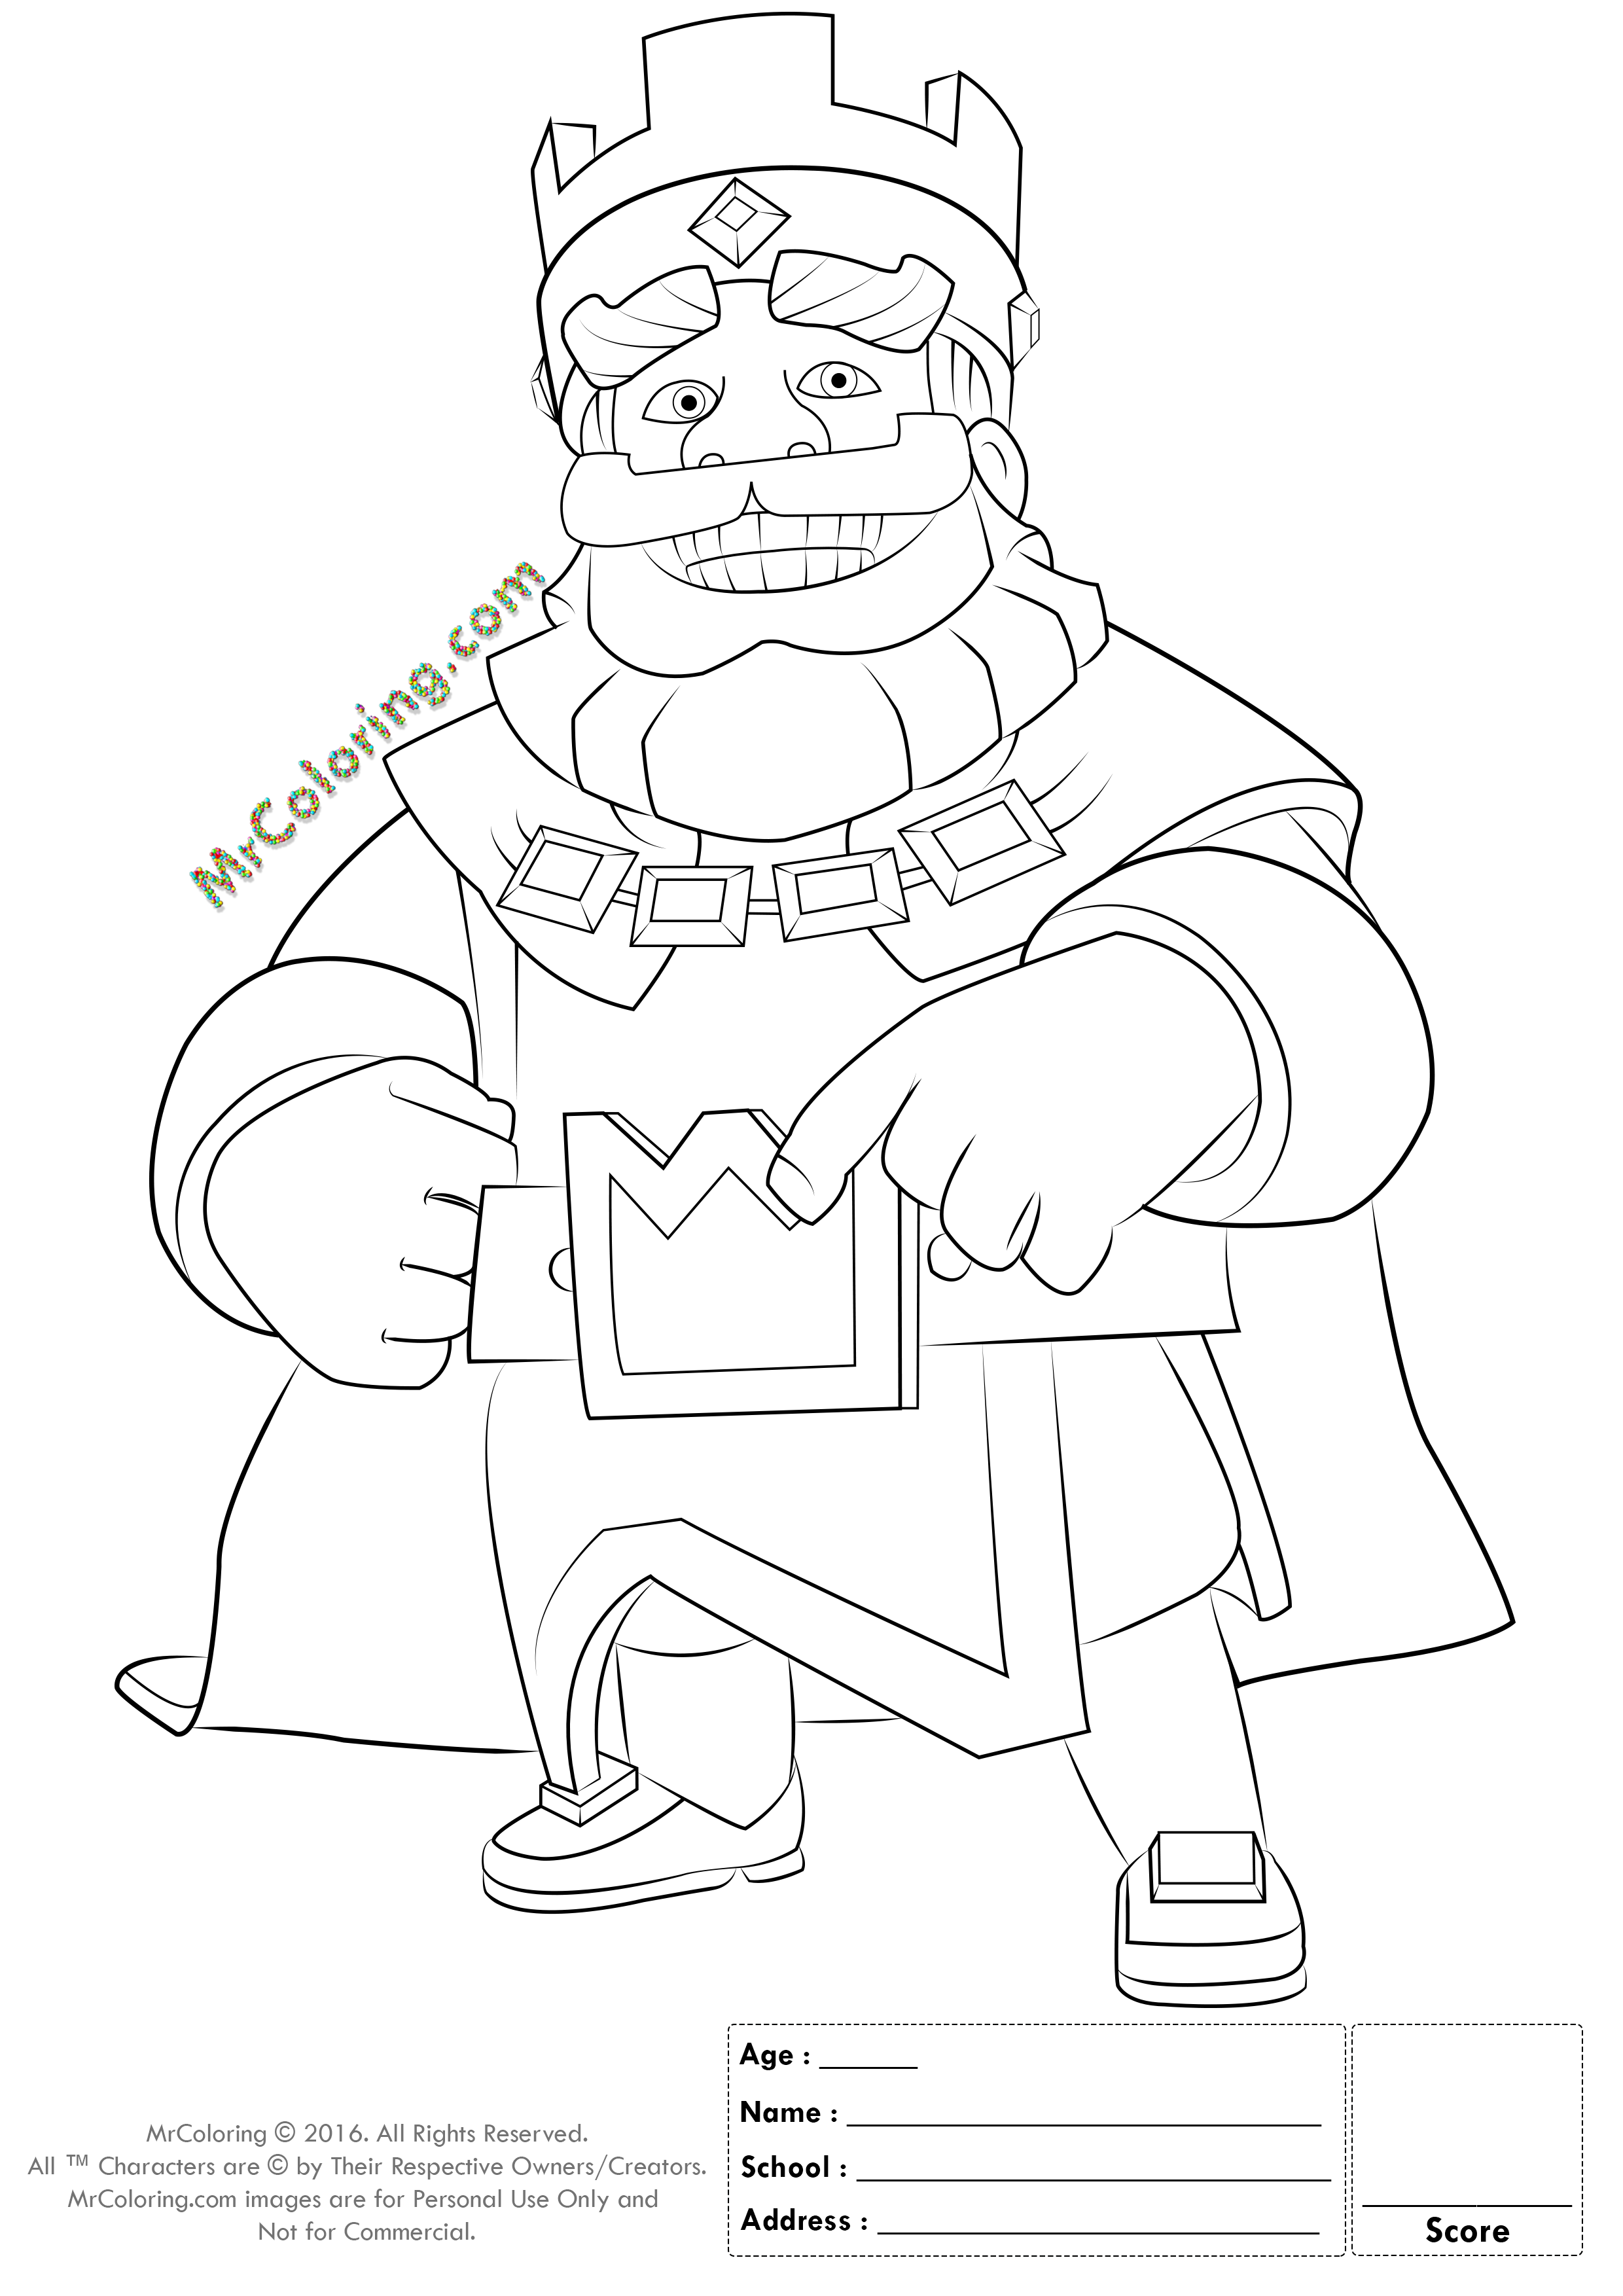 info file name blue king clash royale coloring pages 2 file type - Images Of Coloring Pages 2